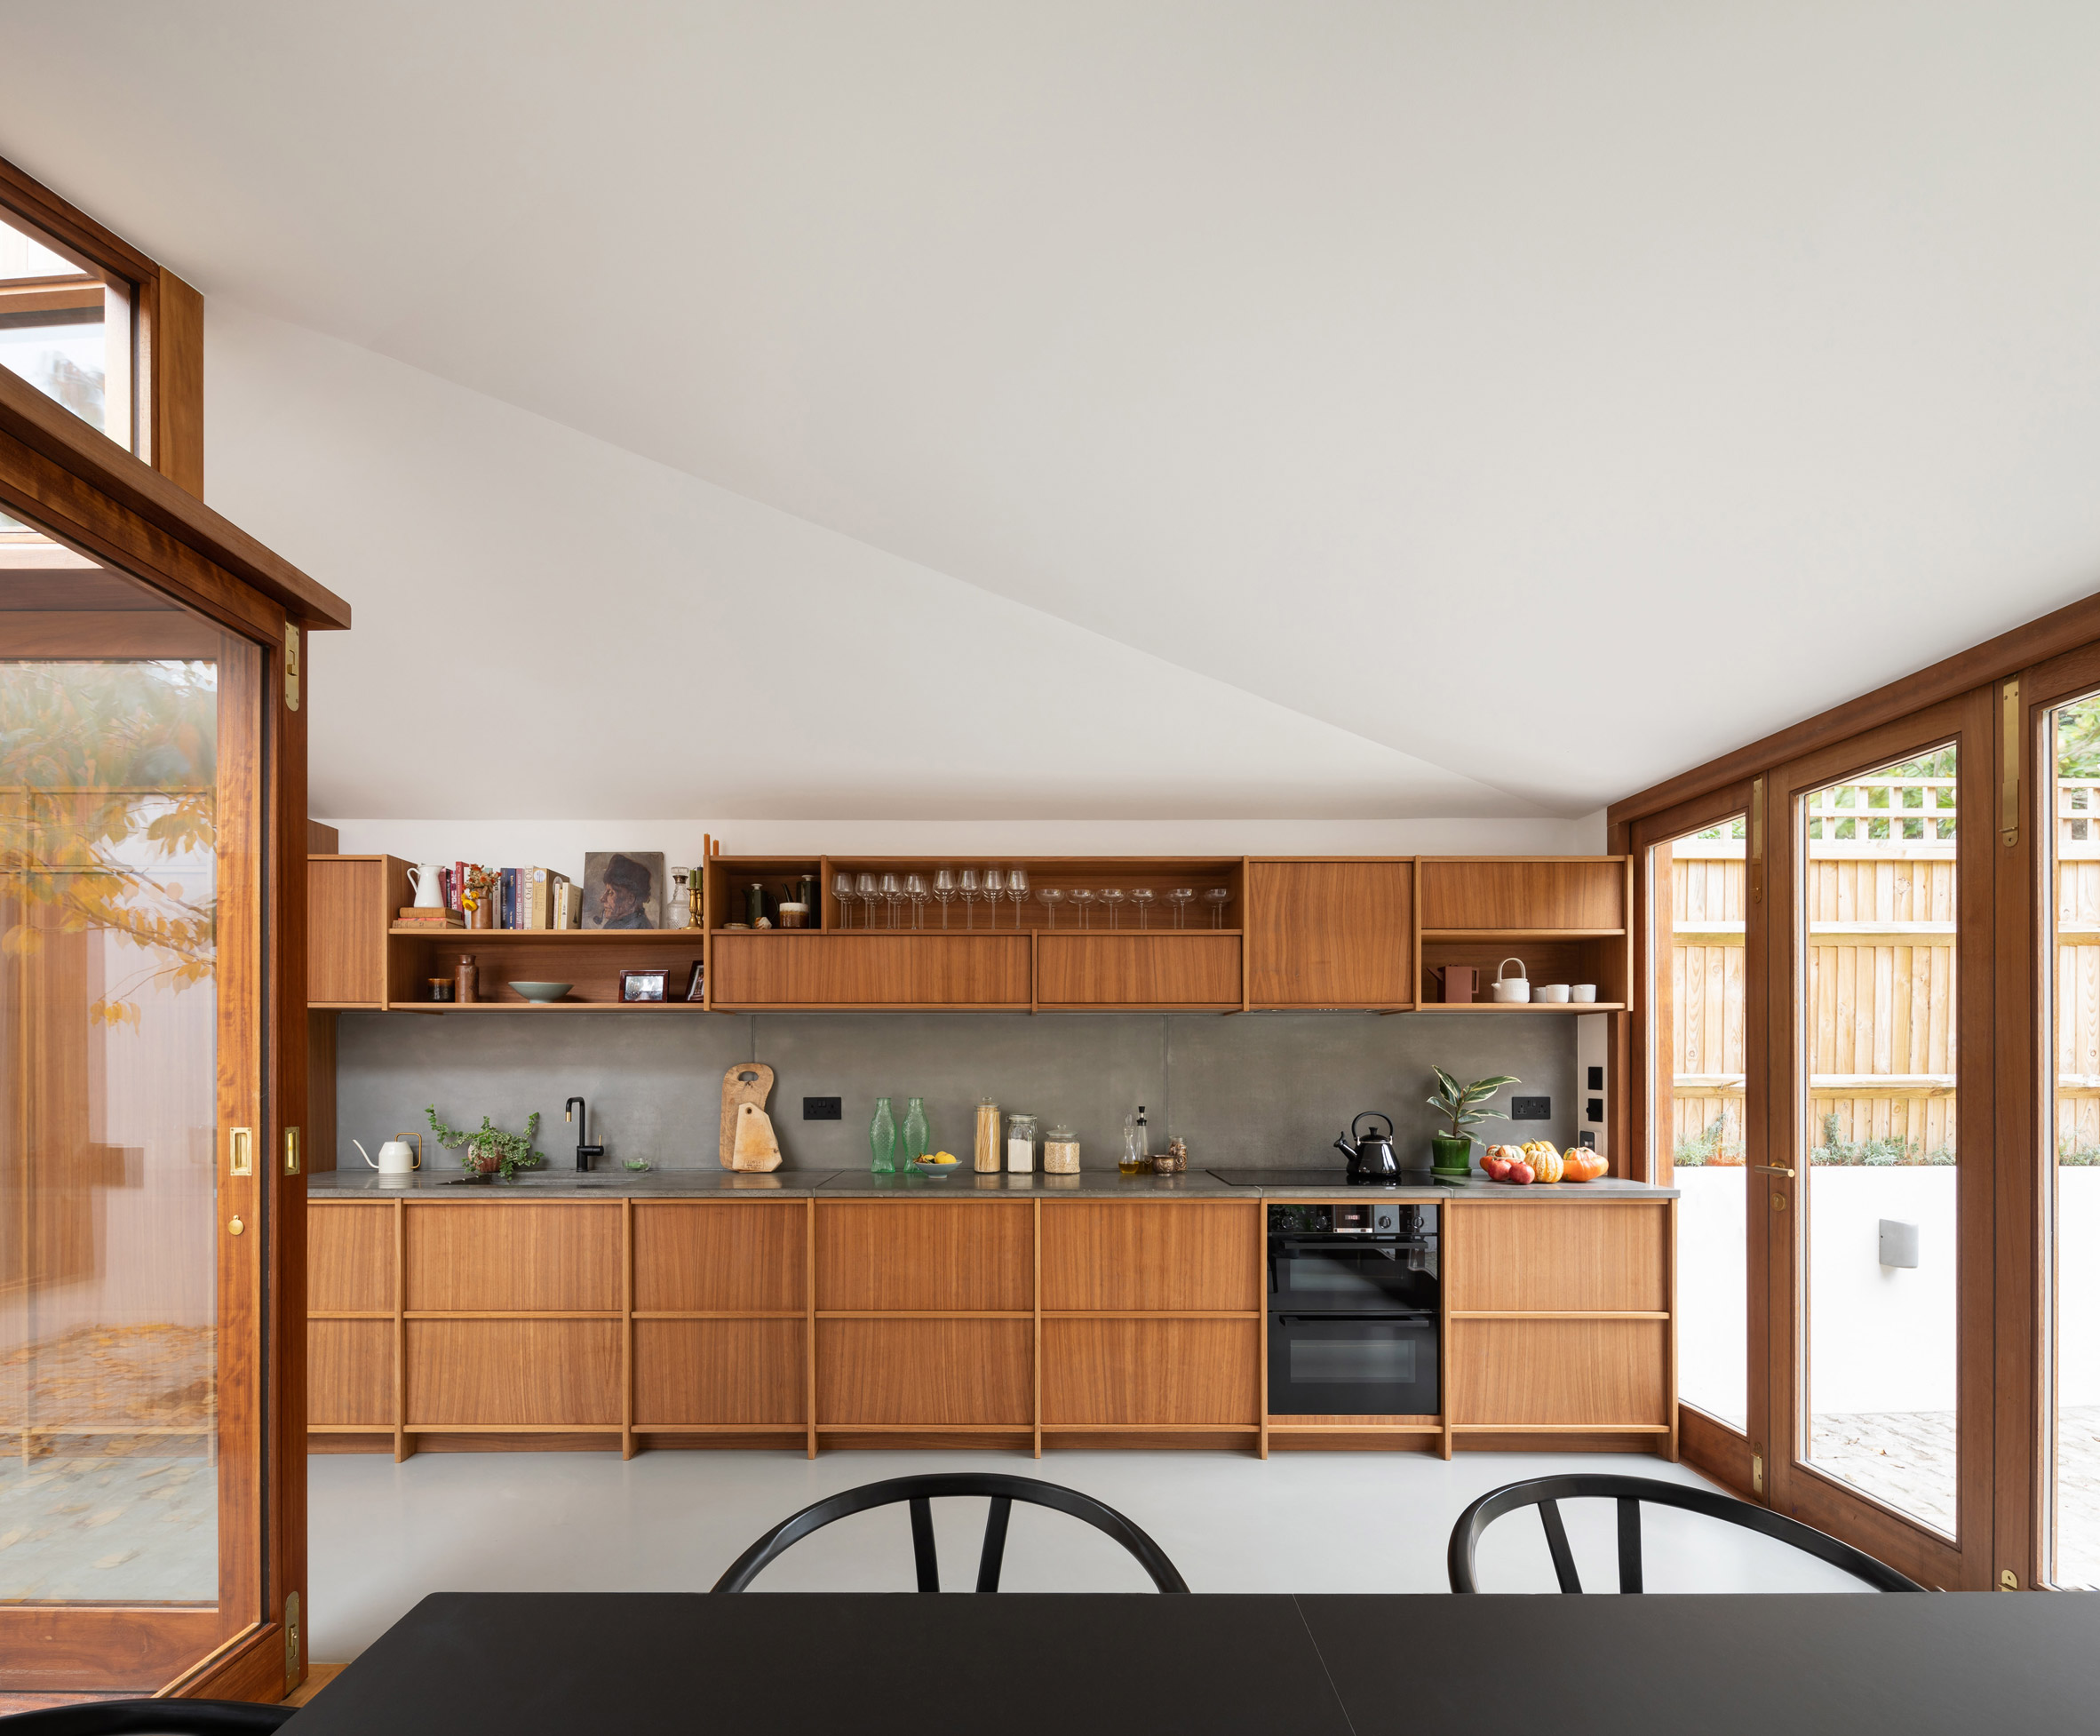 A wooden kitchen that stretches the length of a wall